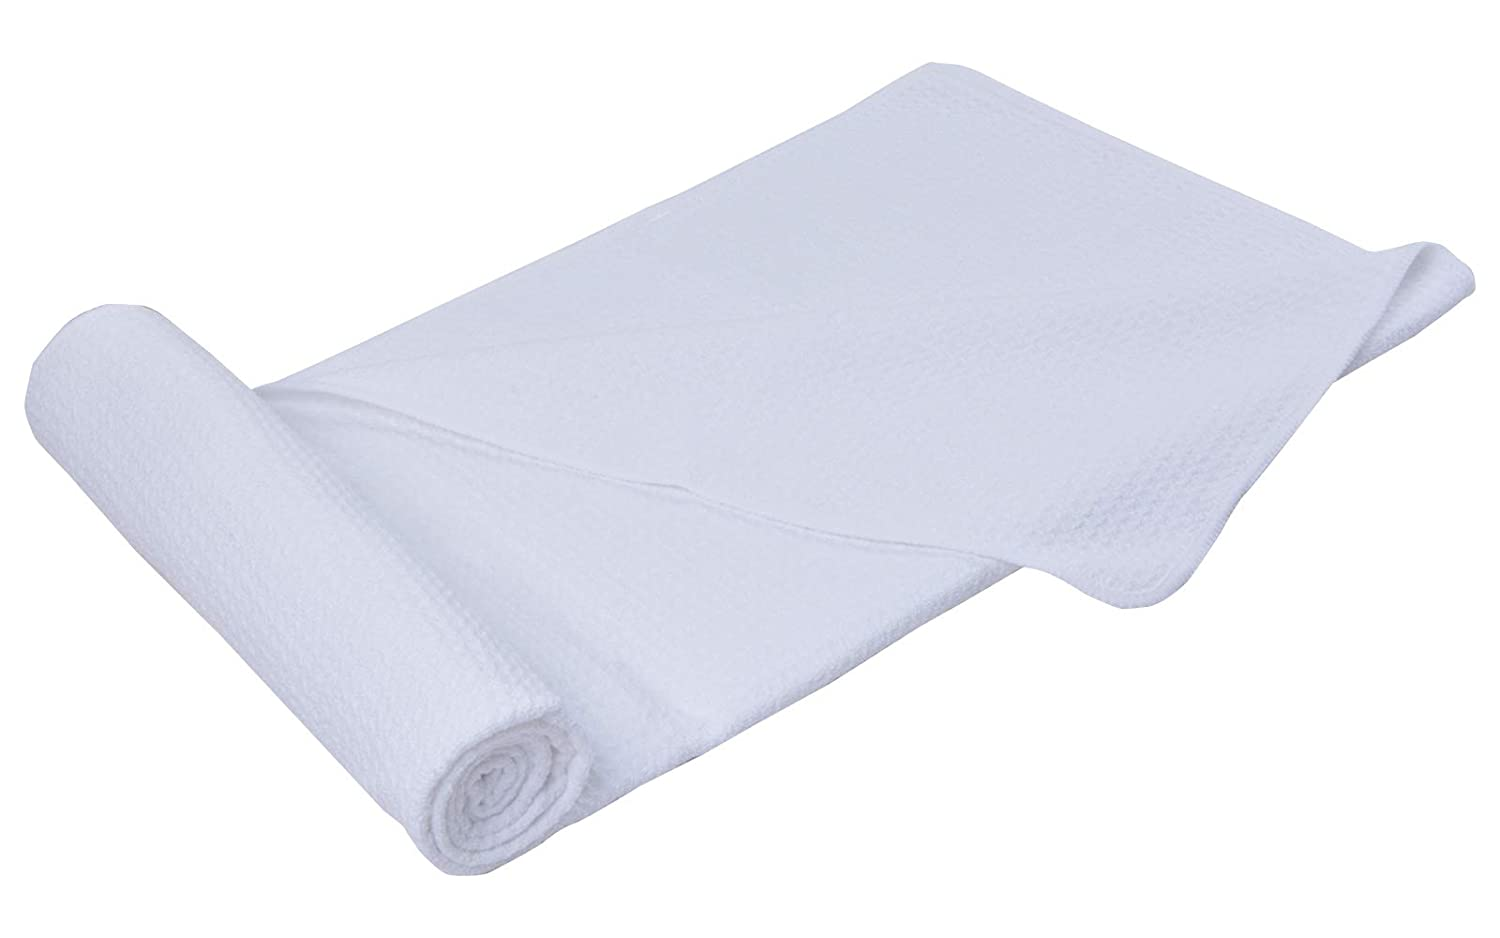 Sinland Microfiber Towel Waffle Weave Design Ultra Absorbent and Soft Hair Drying Towel Bath Towel 20Inchx40Inch White